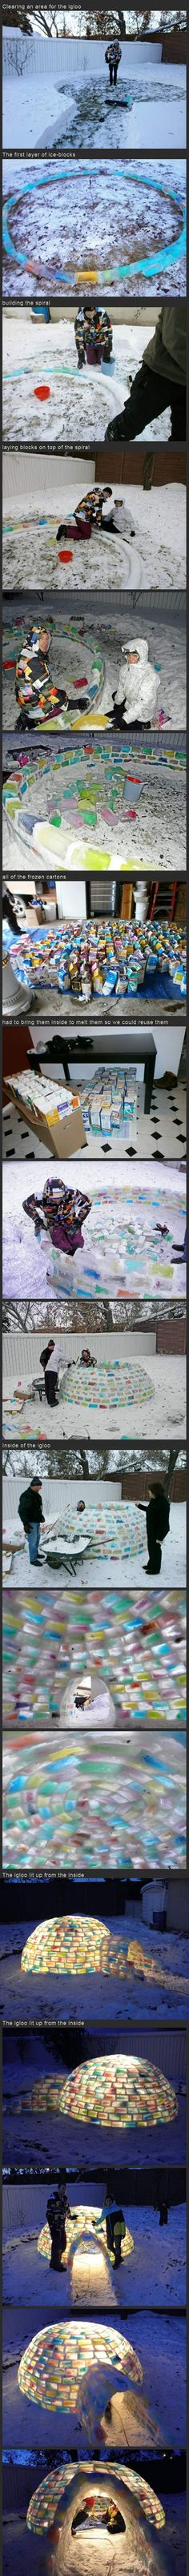 The world's most awesome igloo. Beautiful